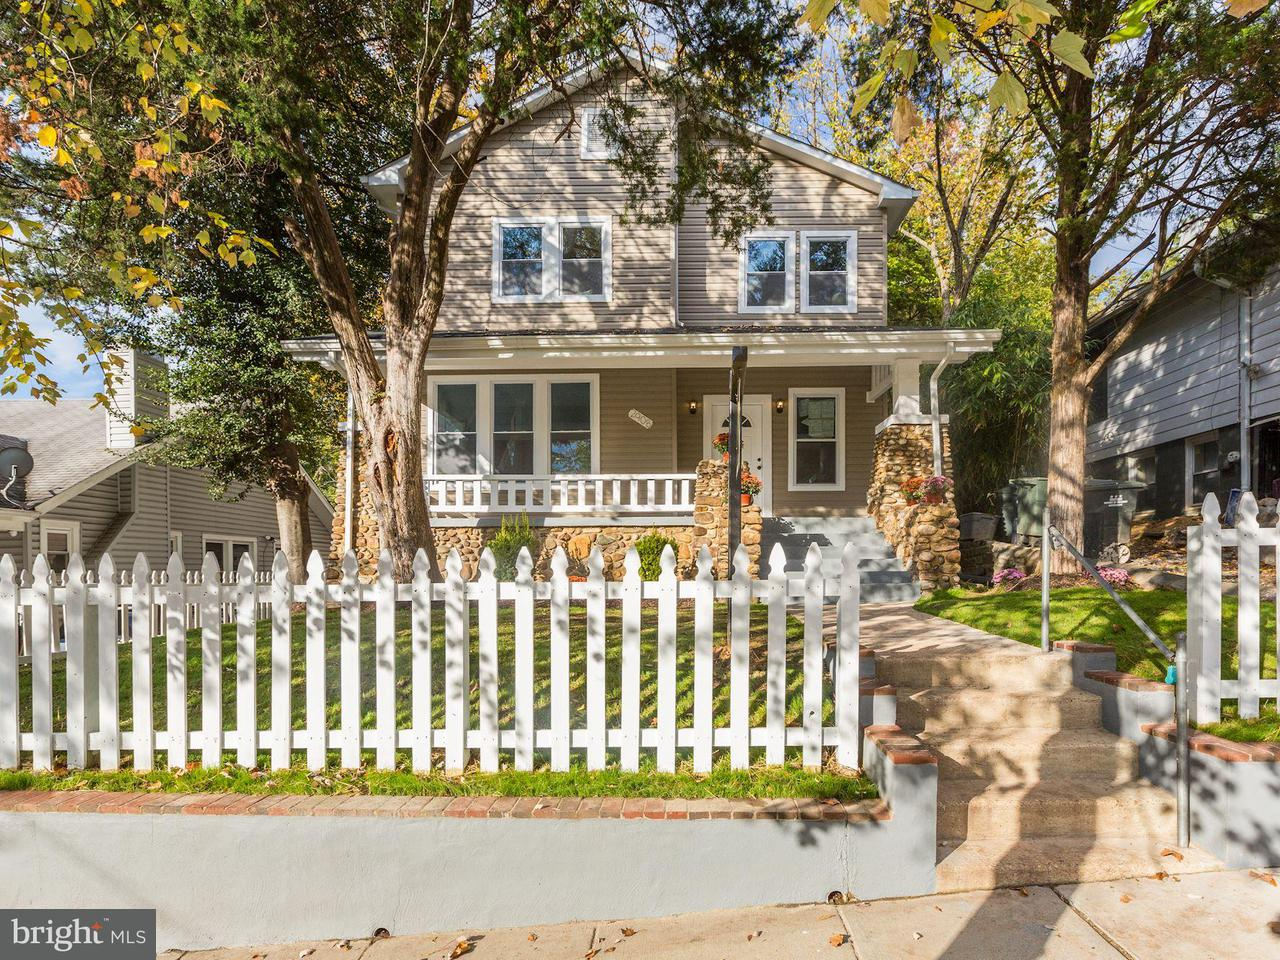 Single Family Home for Sale at 2908 26TH ST NE 2908 26TH ST NE Washington, District Of Columbia 20018 United States